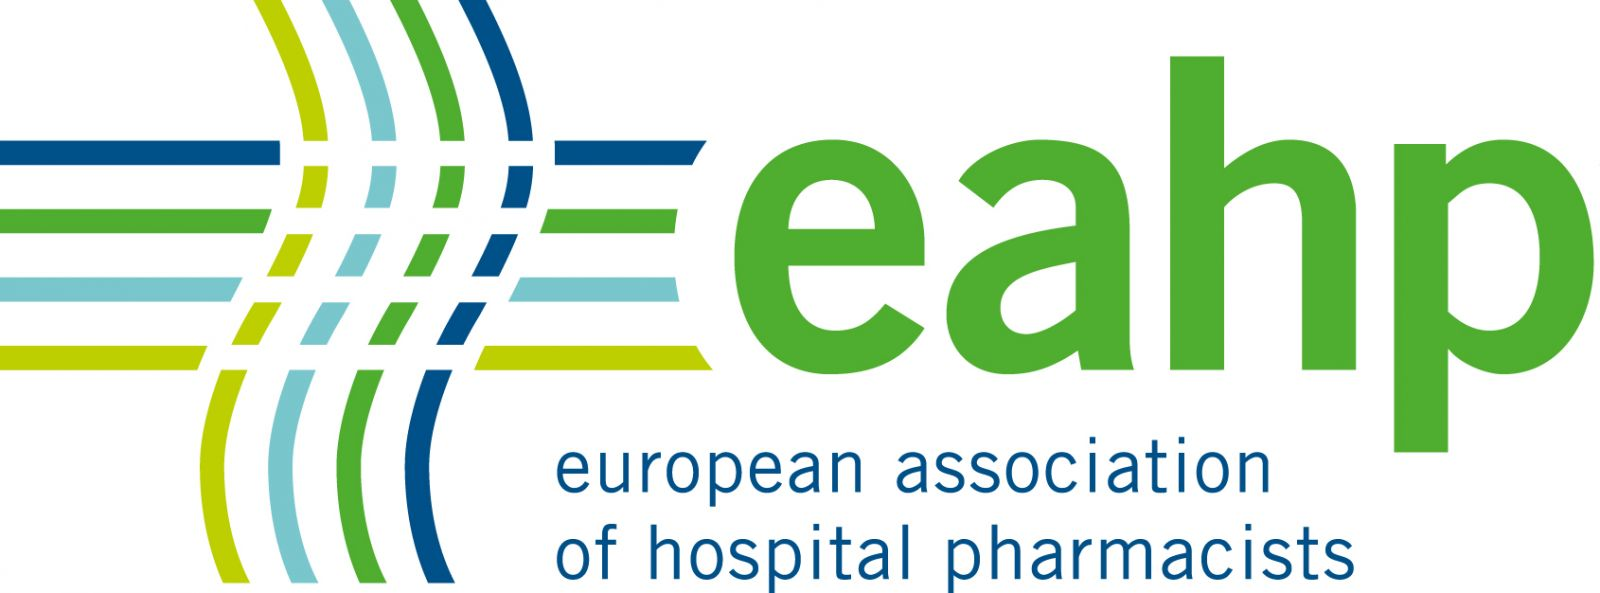 EAHP association logo rgb 300dpi